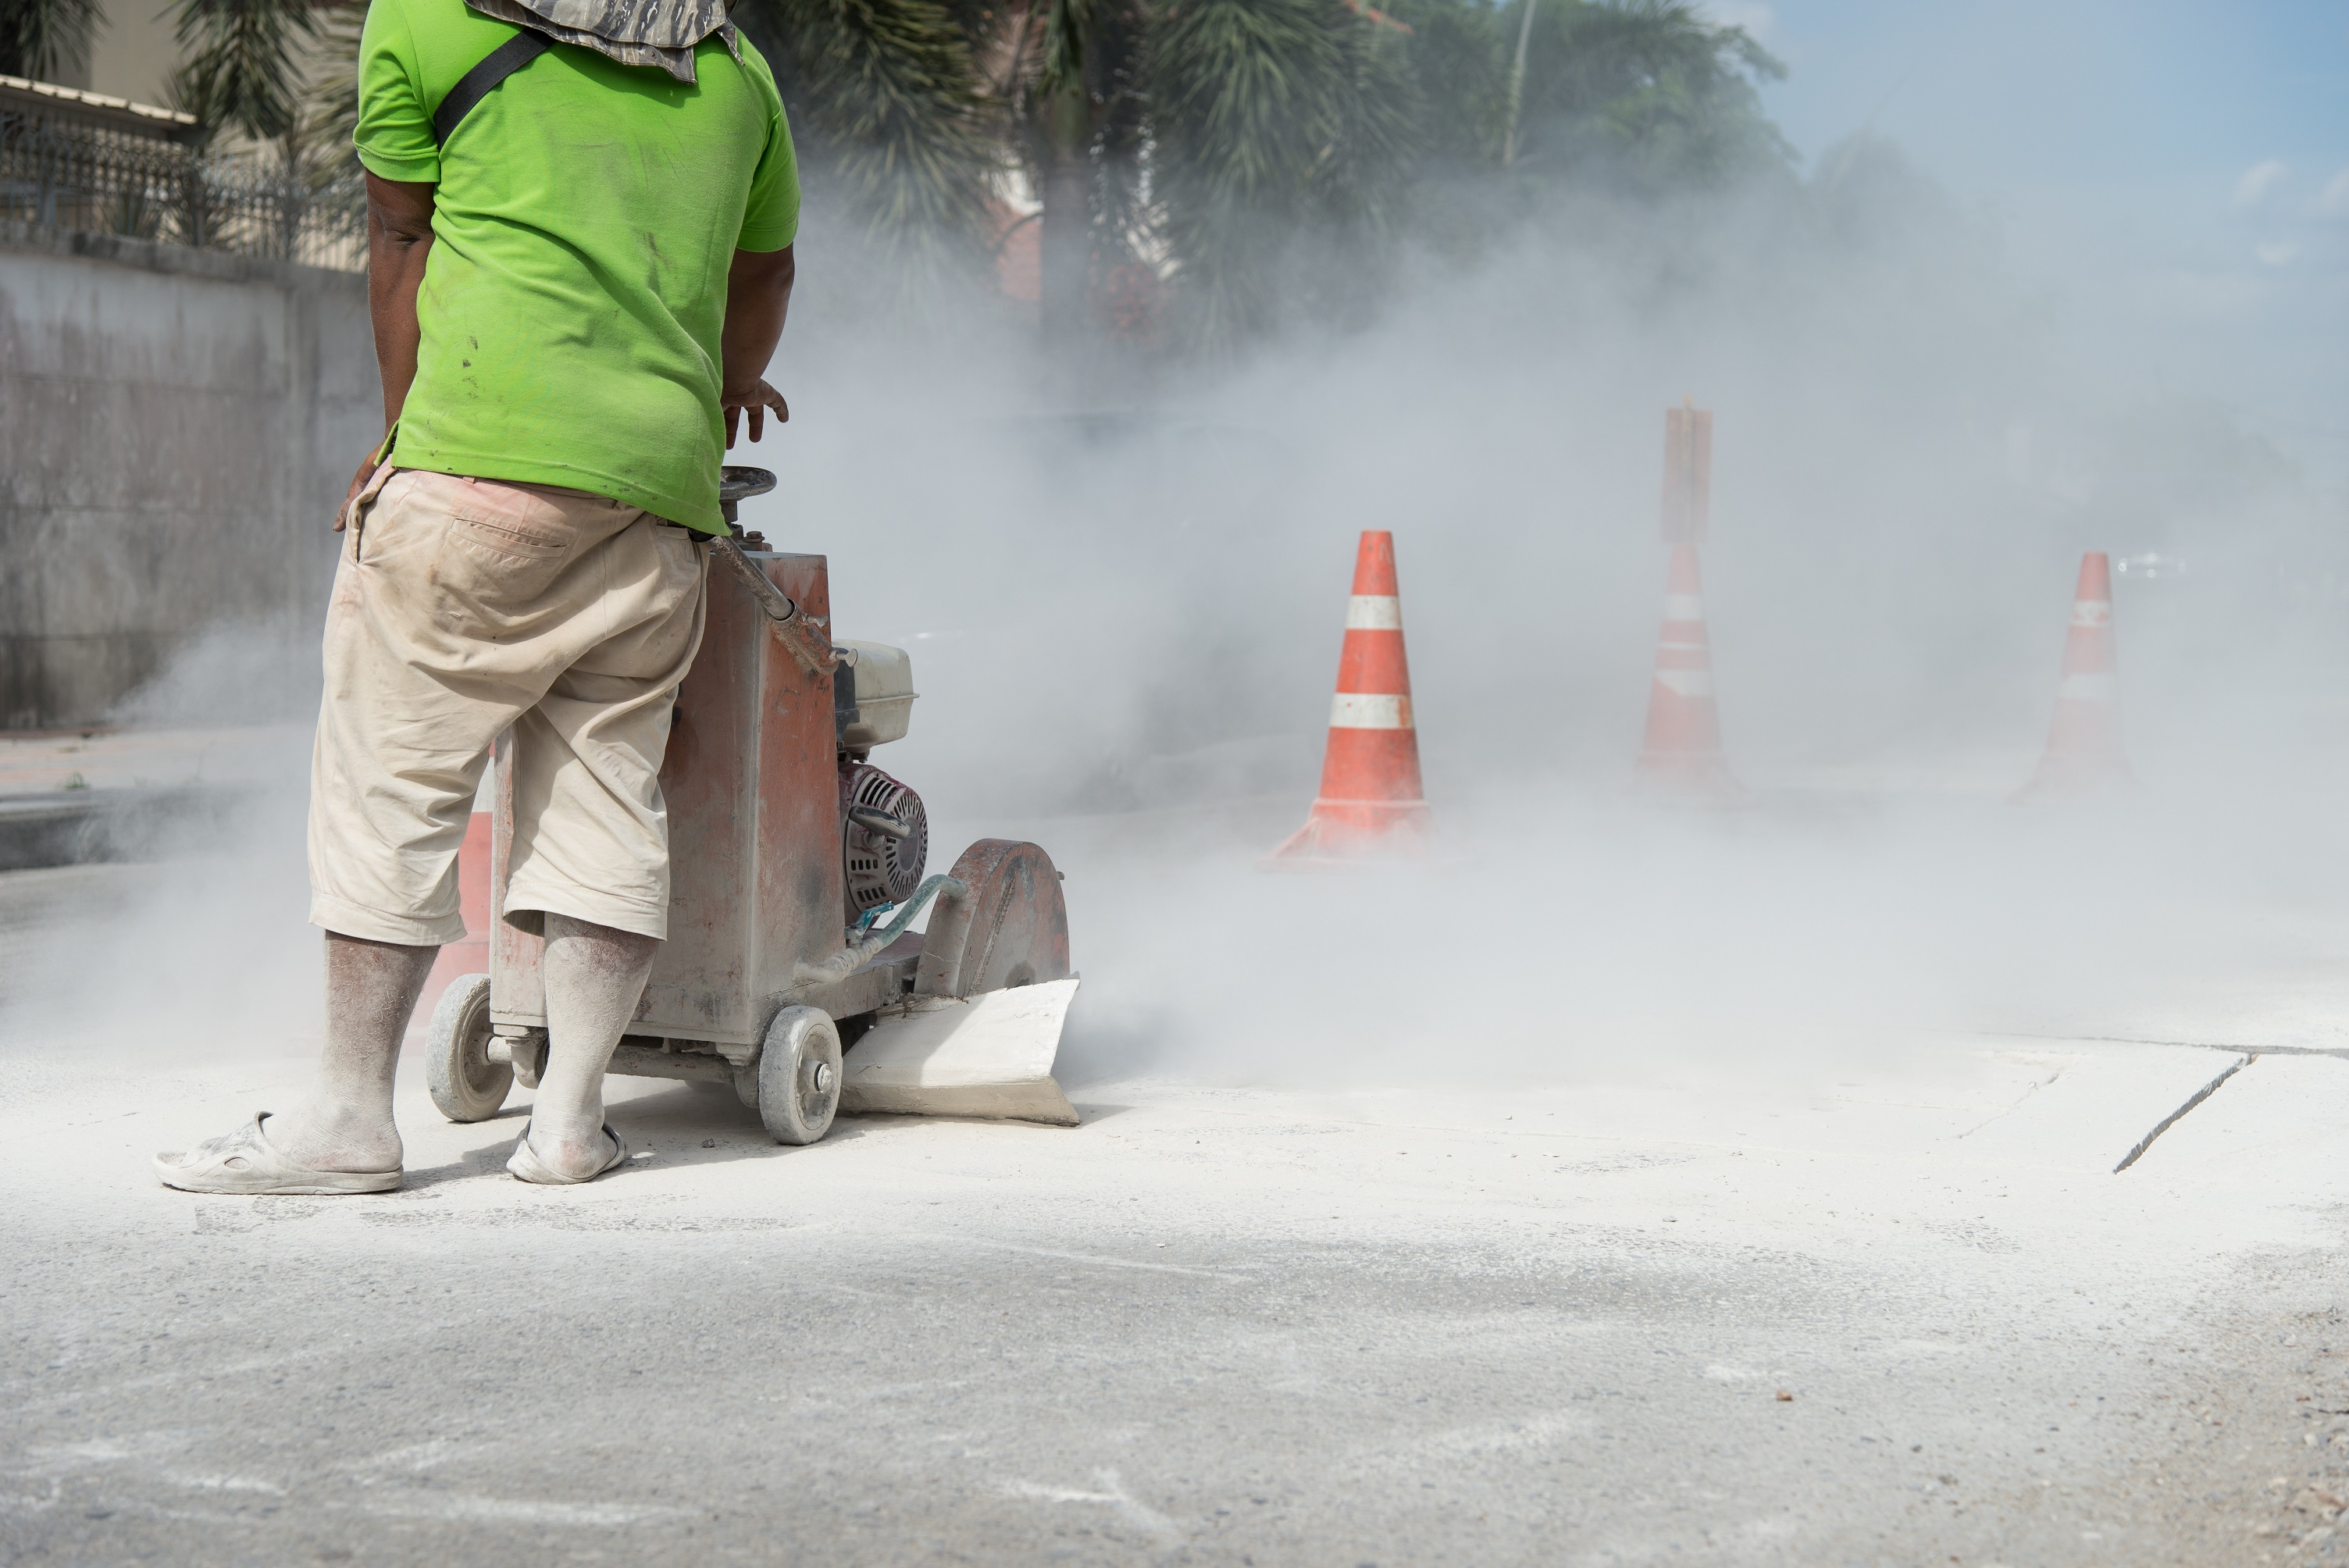 cement dust being created by a machine